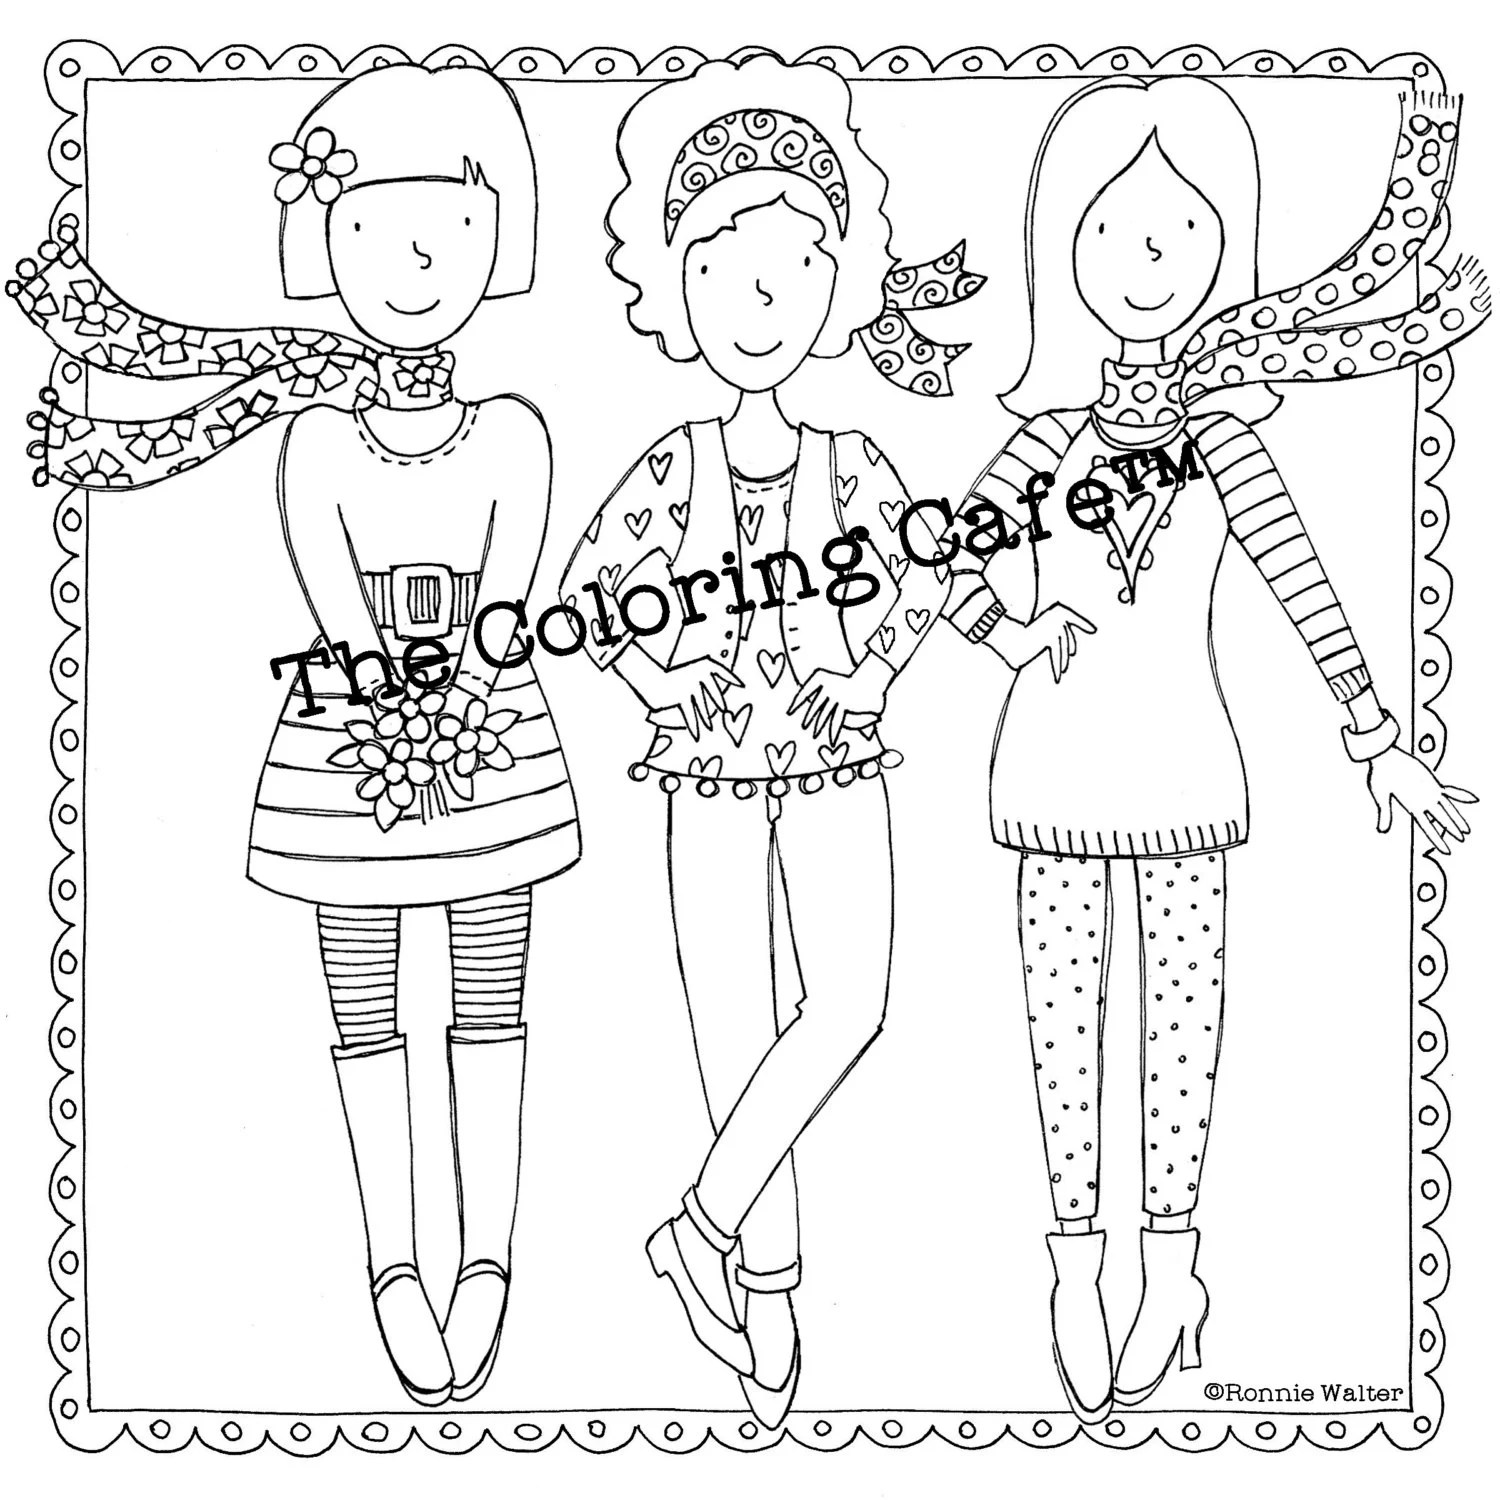 The Coloring Cafe™ Coloring Book for Grown-Up Girls Adult